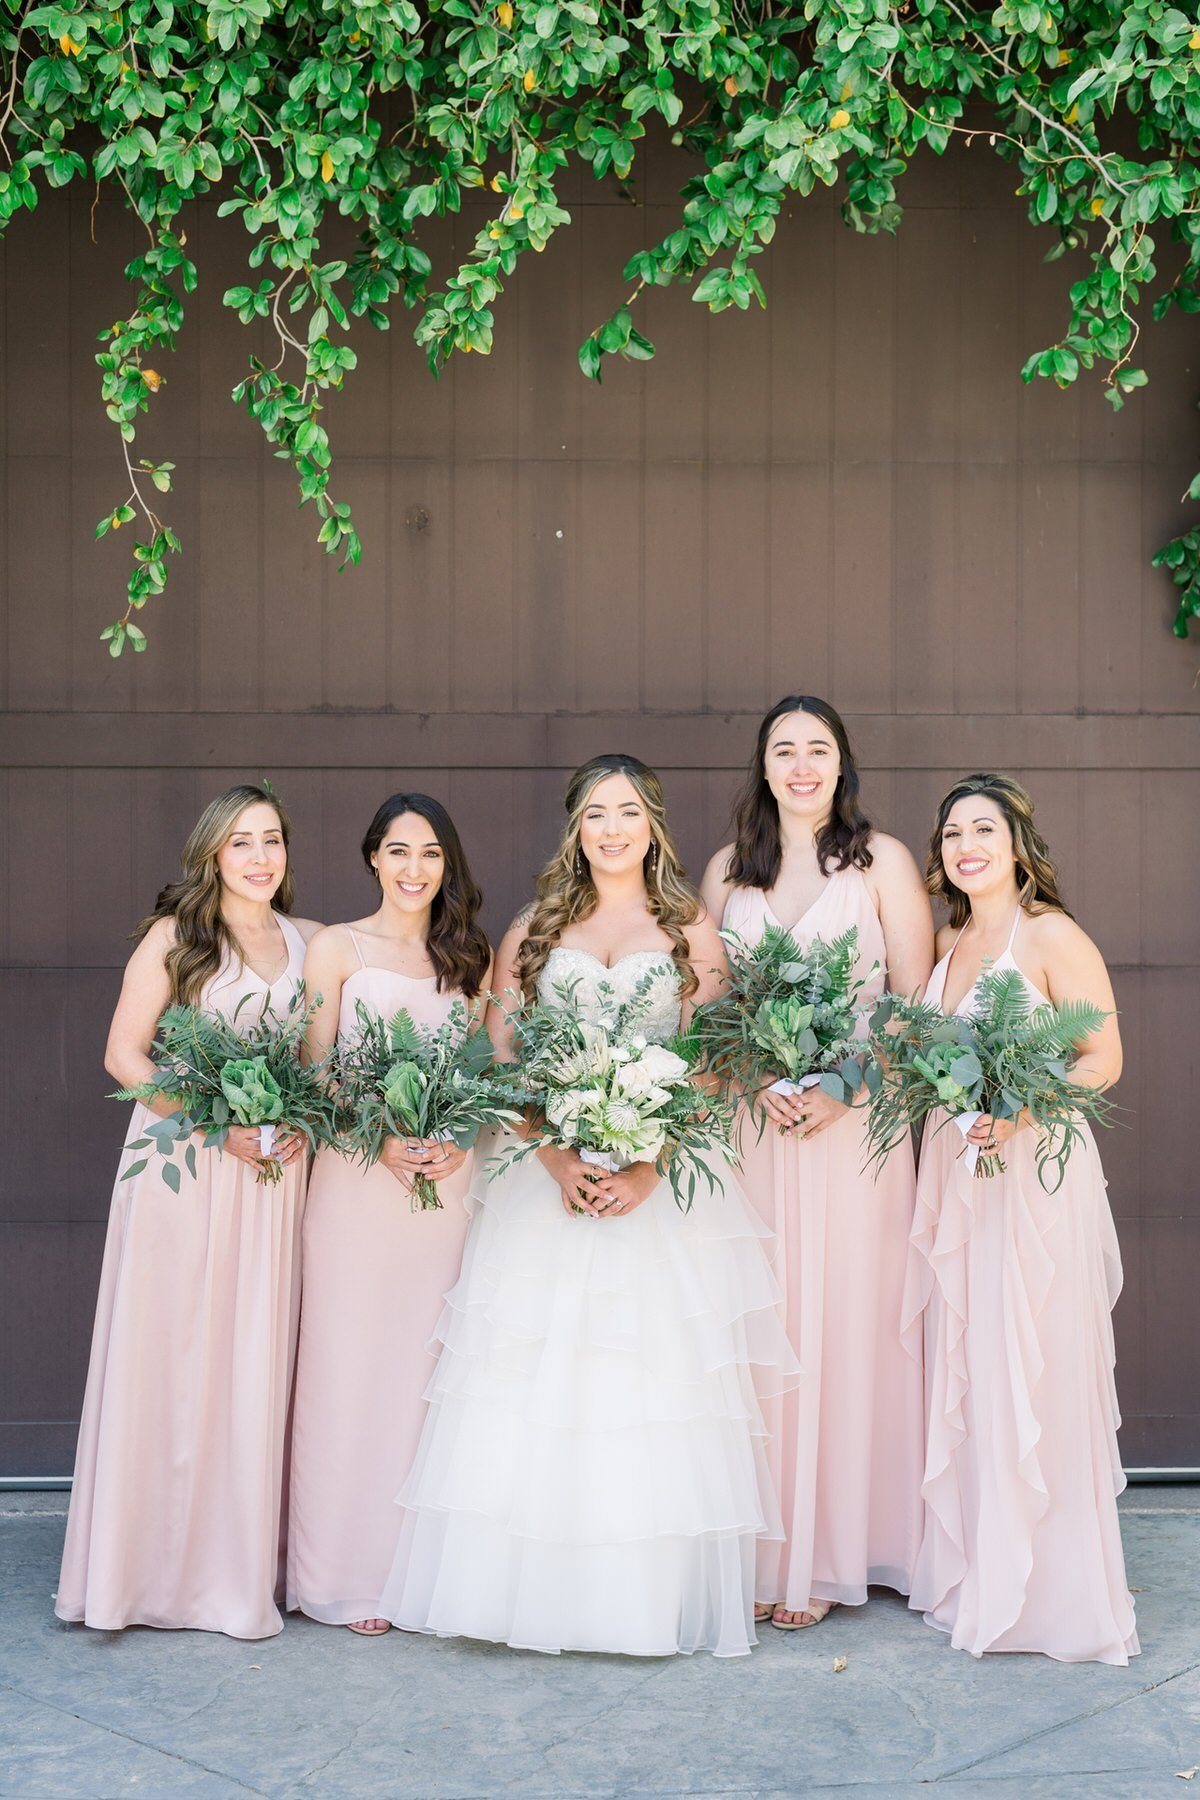 Wild Bouquet Greenery Los Angeles Wedding Photography